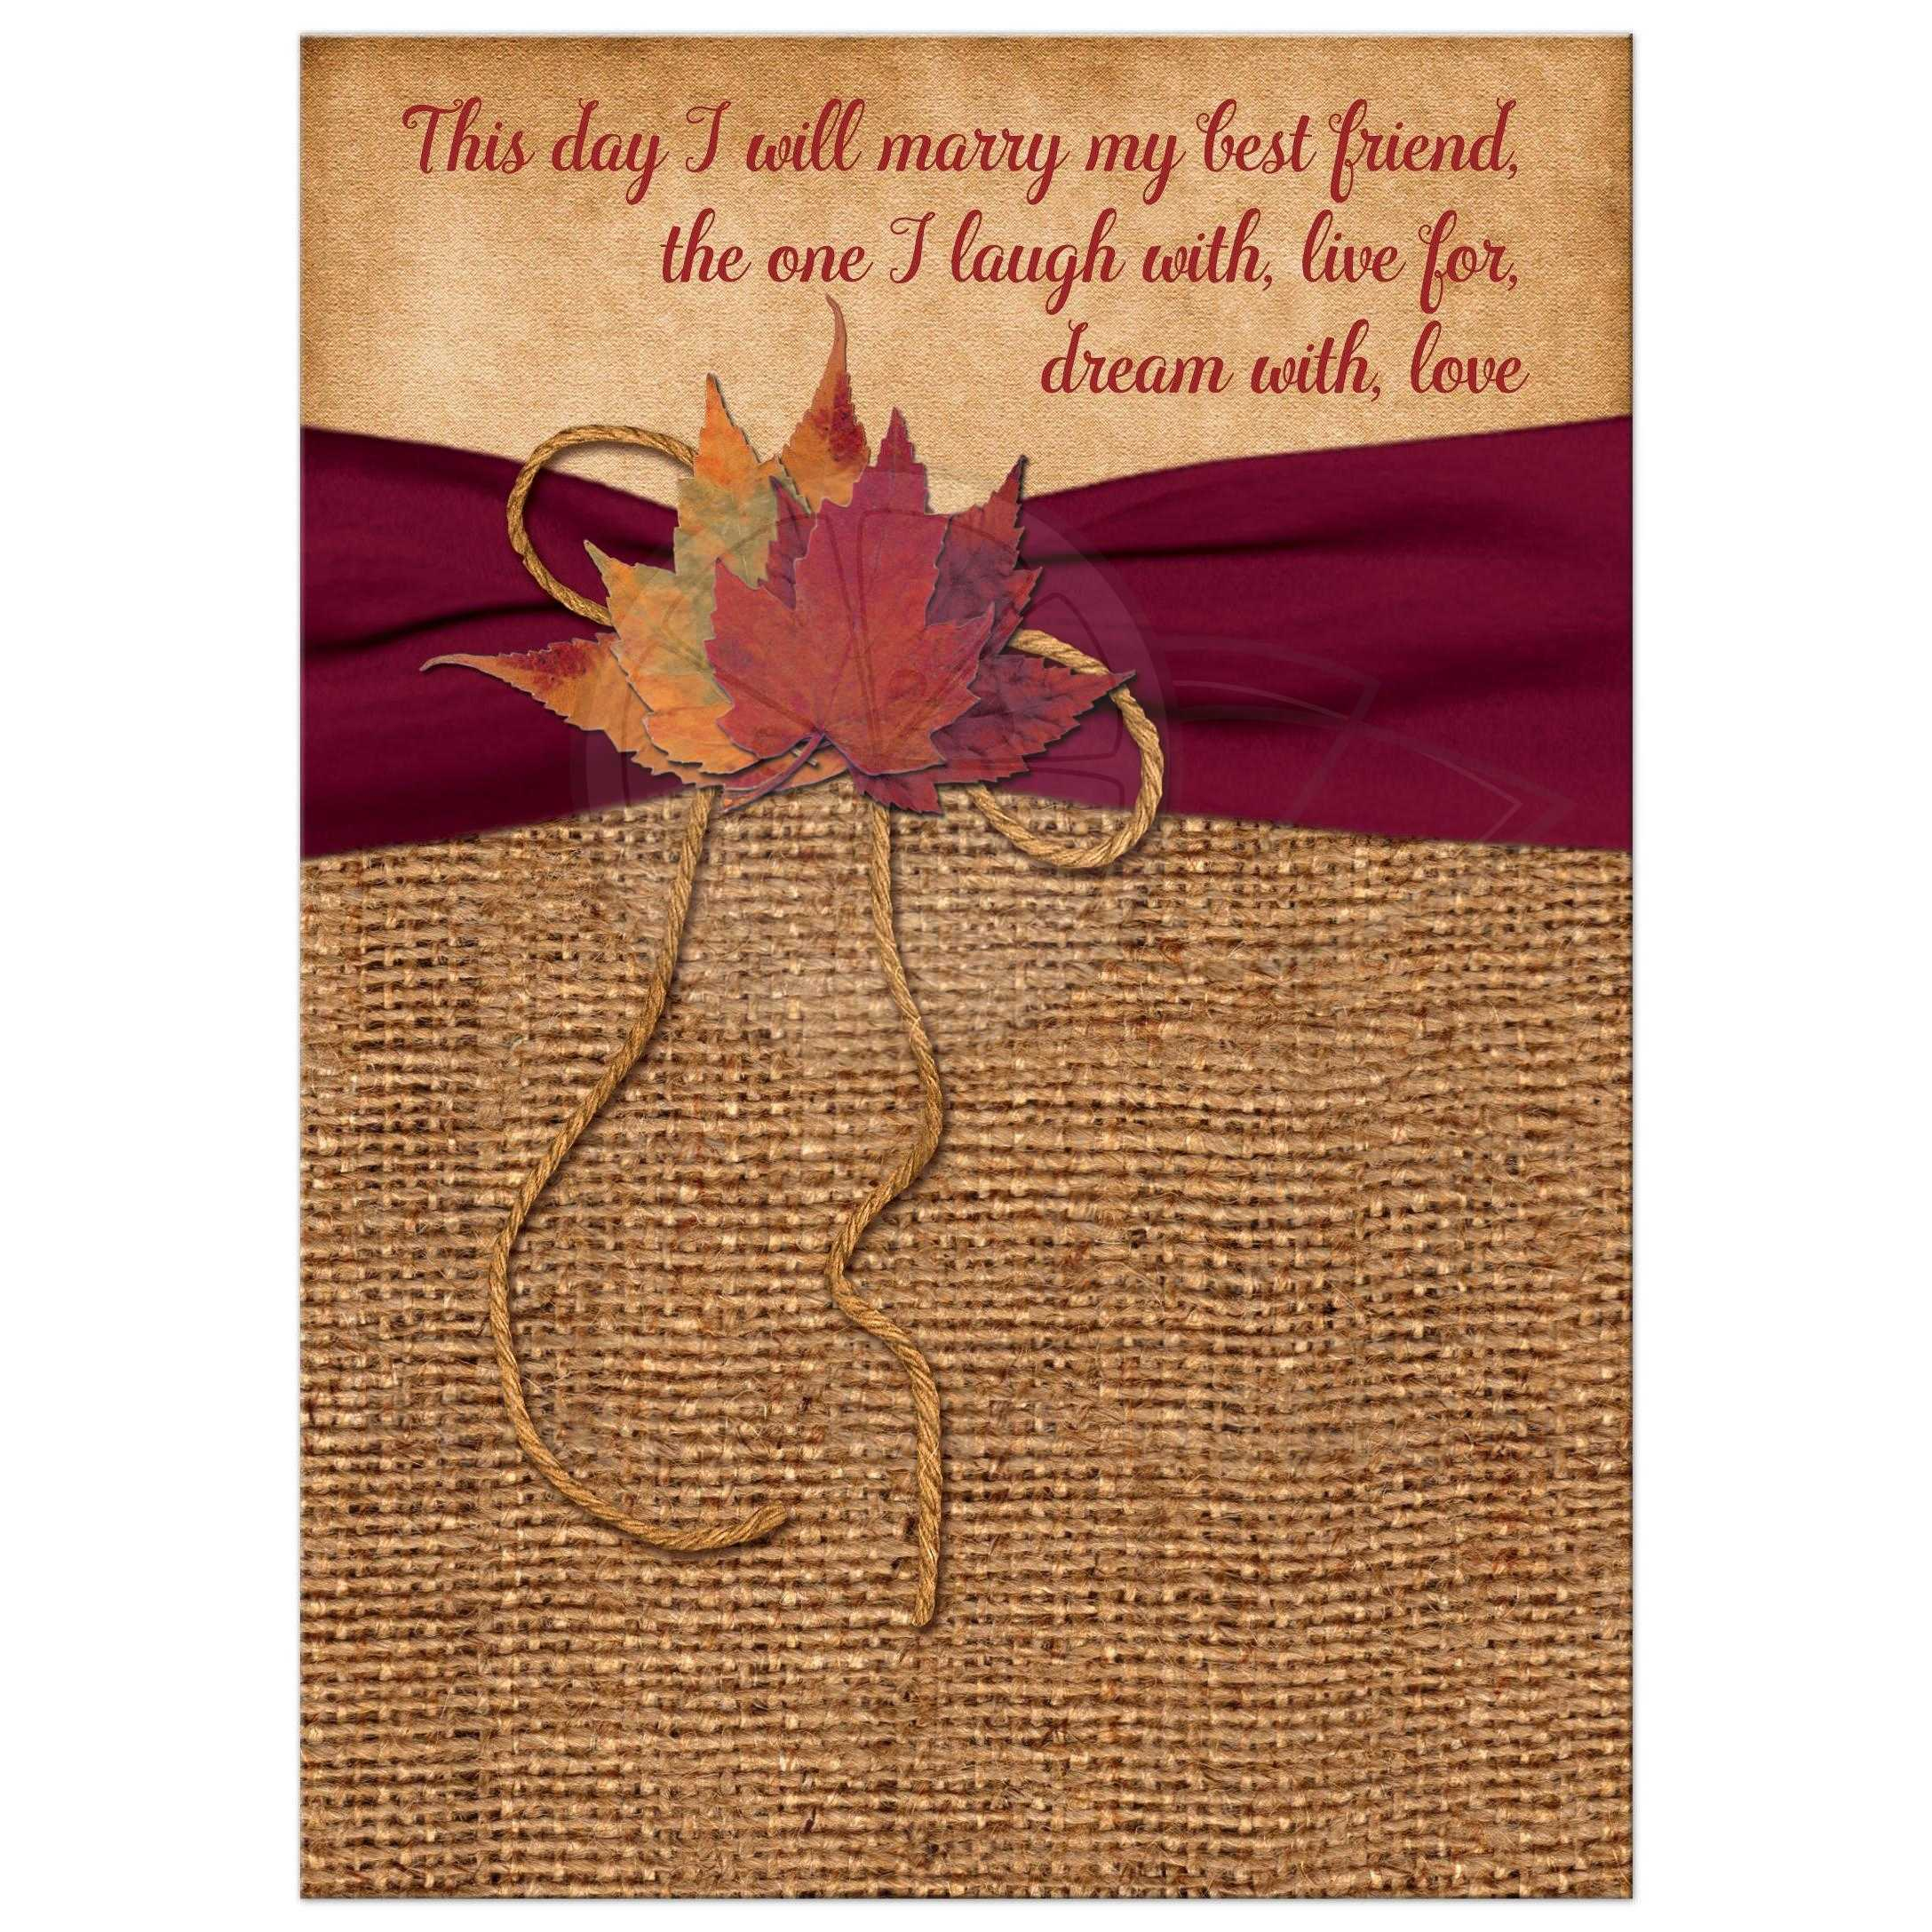 rustic country wedding invitations burlap wedding invitations burlap wedding invitations with a wine ribbon a golden twine bow and autumn leaves